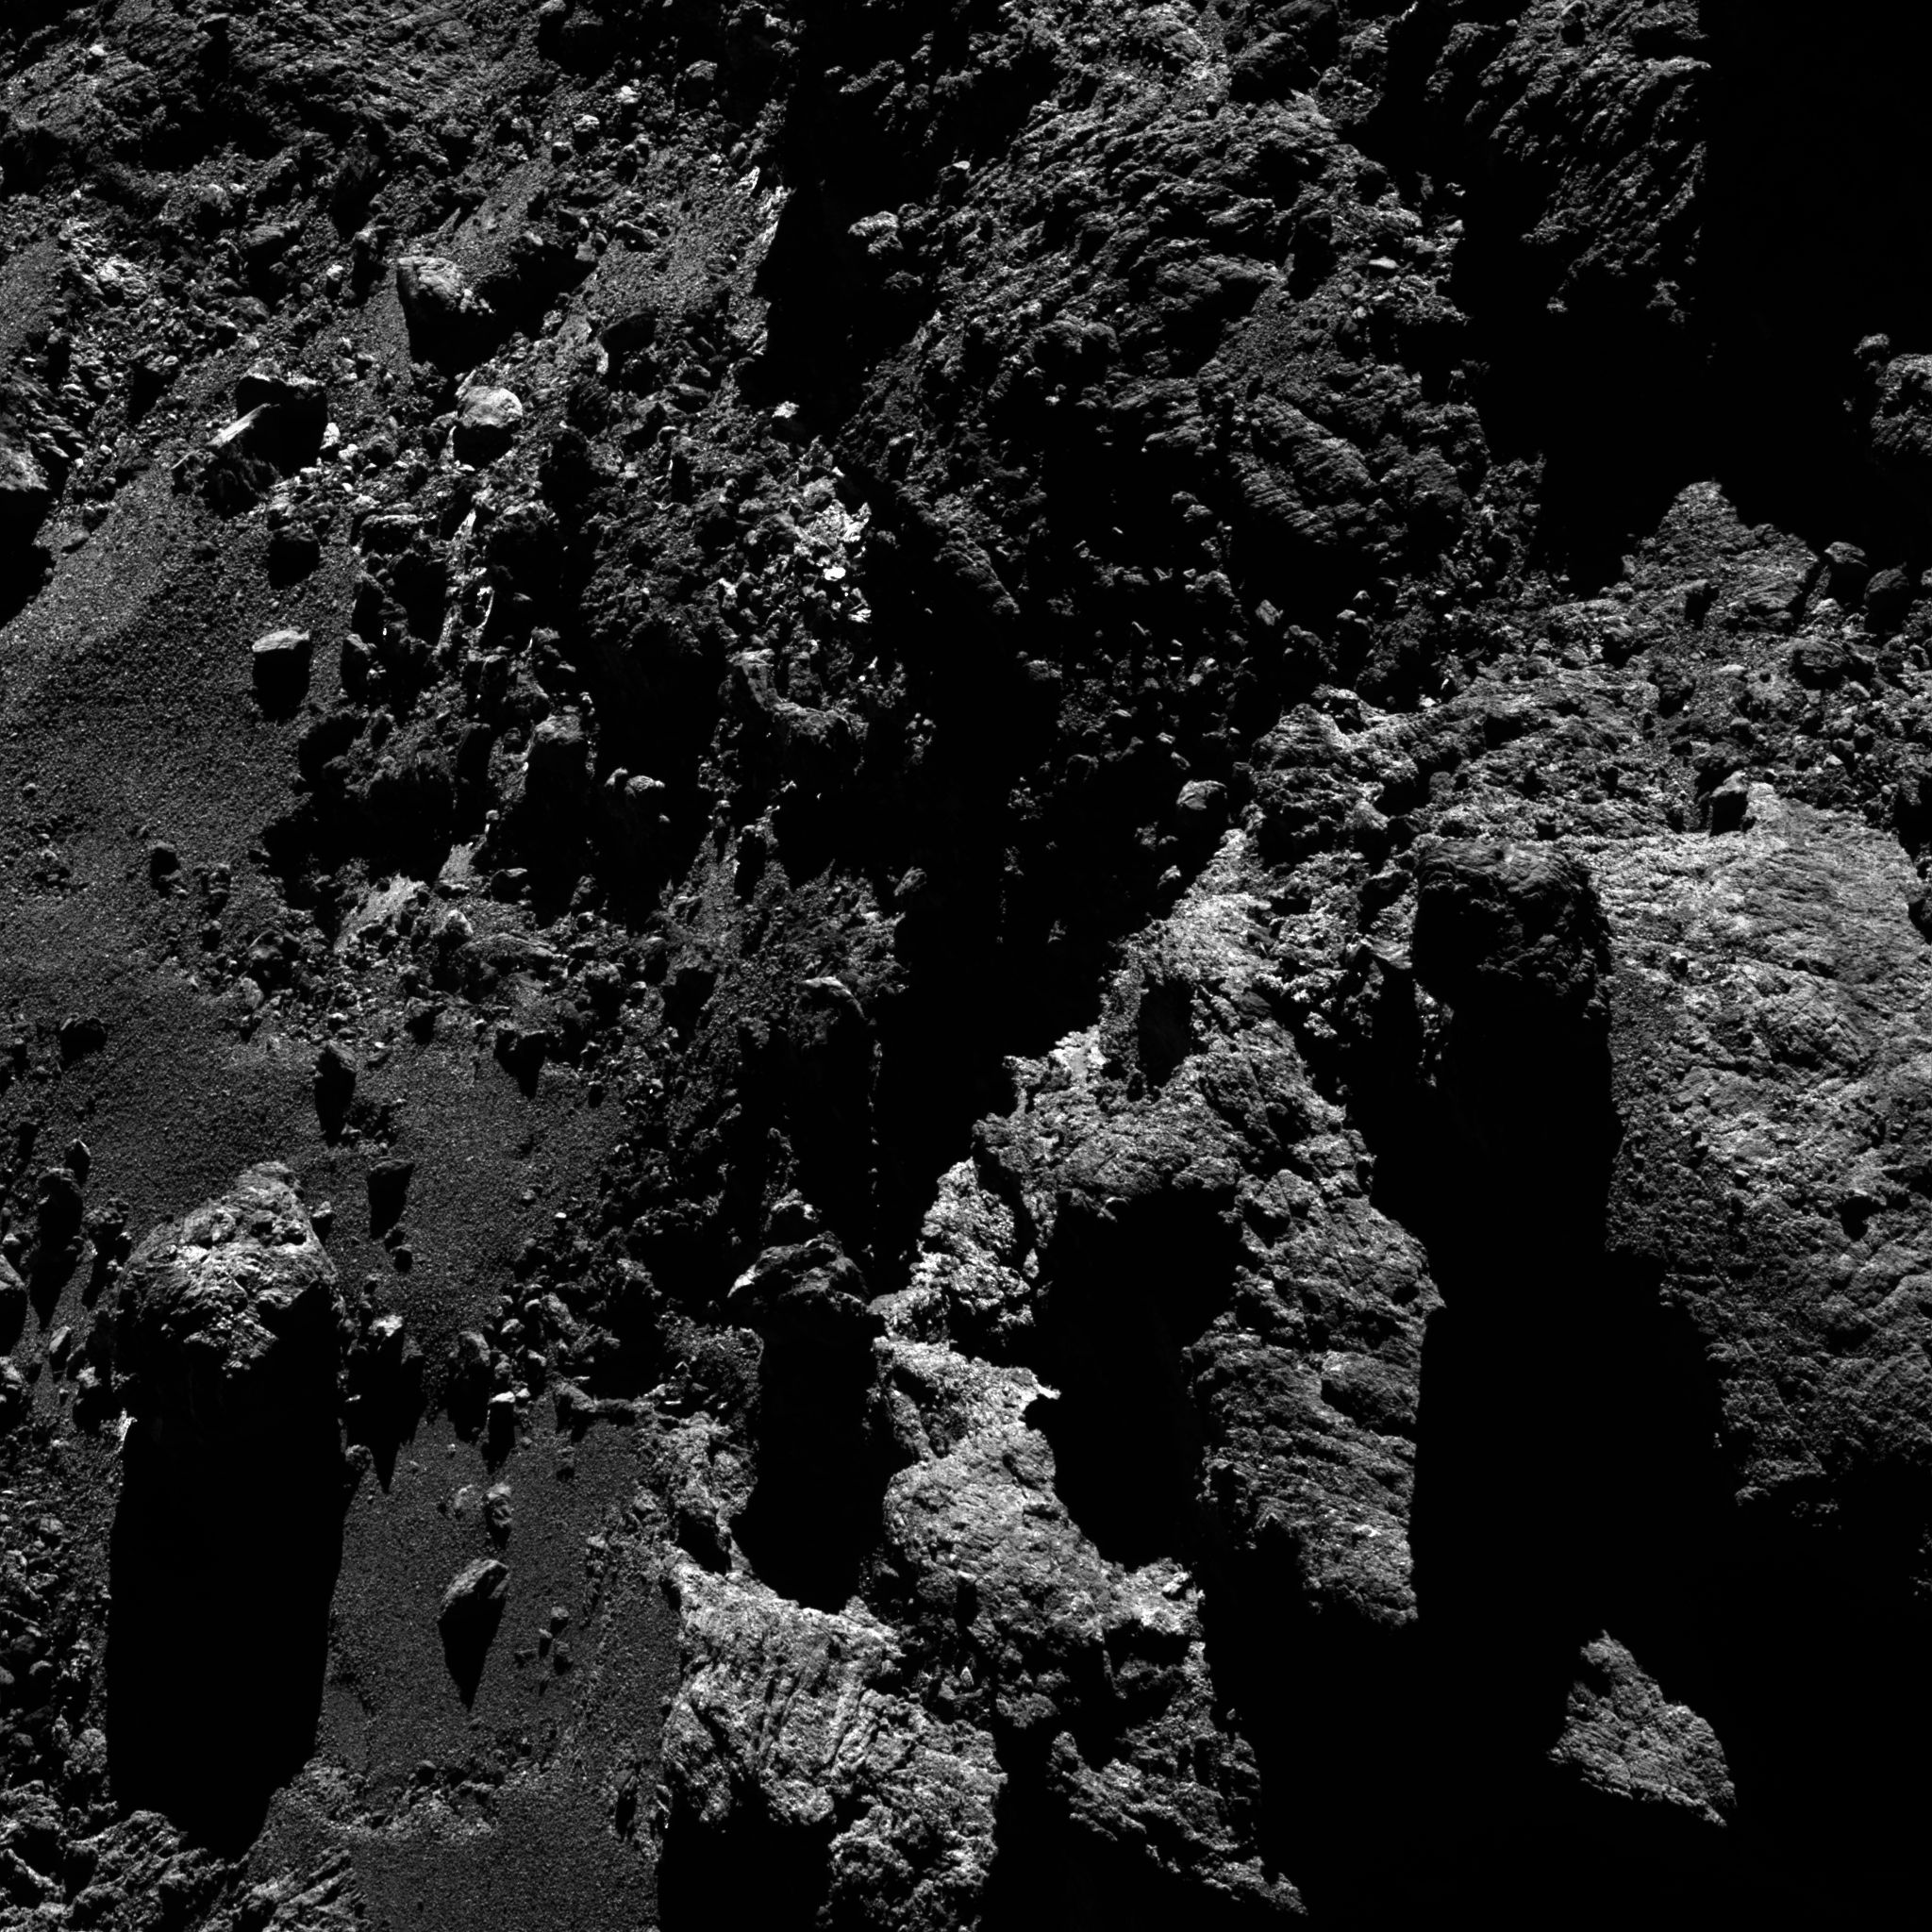 Comet_on_11_May_2016_OSIRIS_narrow-angle_camera